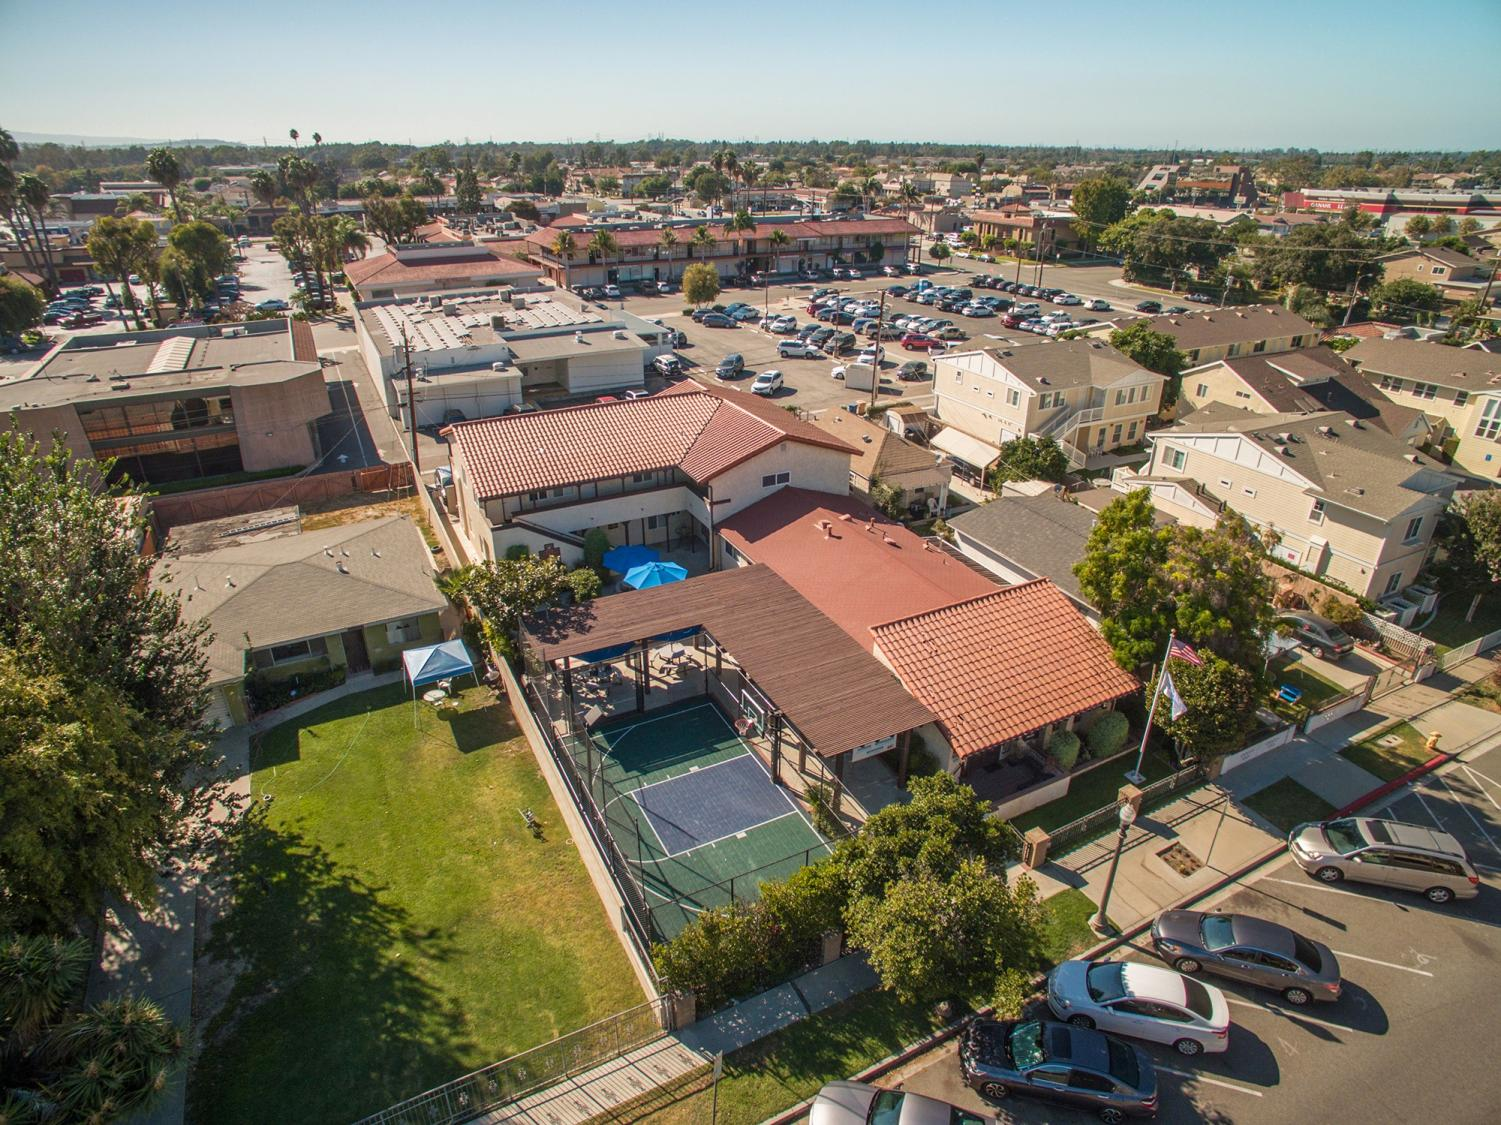 An aerial view of the Casa Youth Shelter facility.